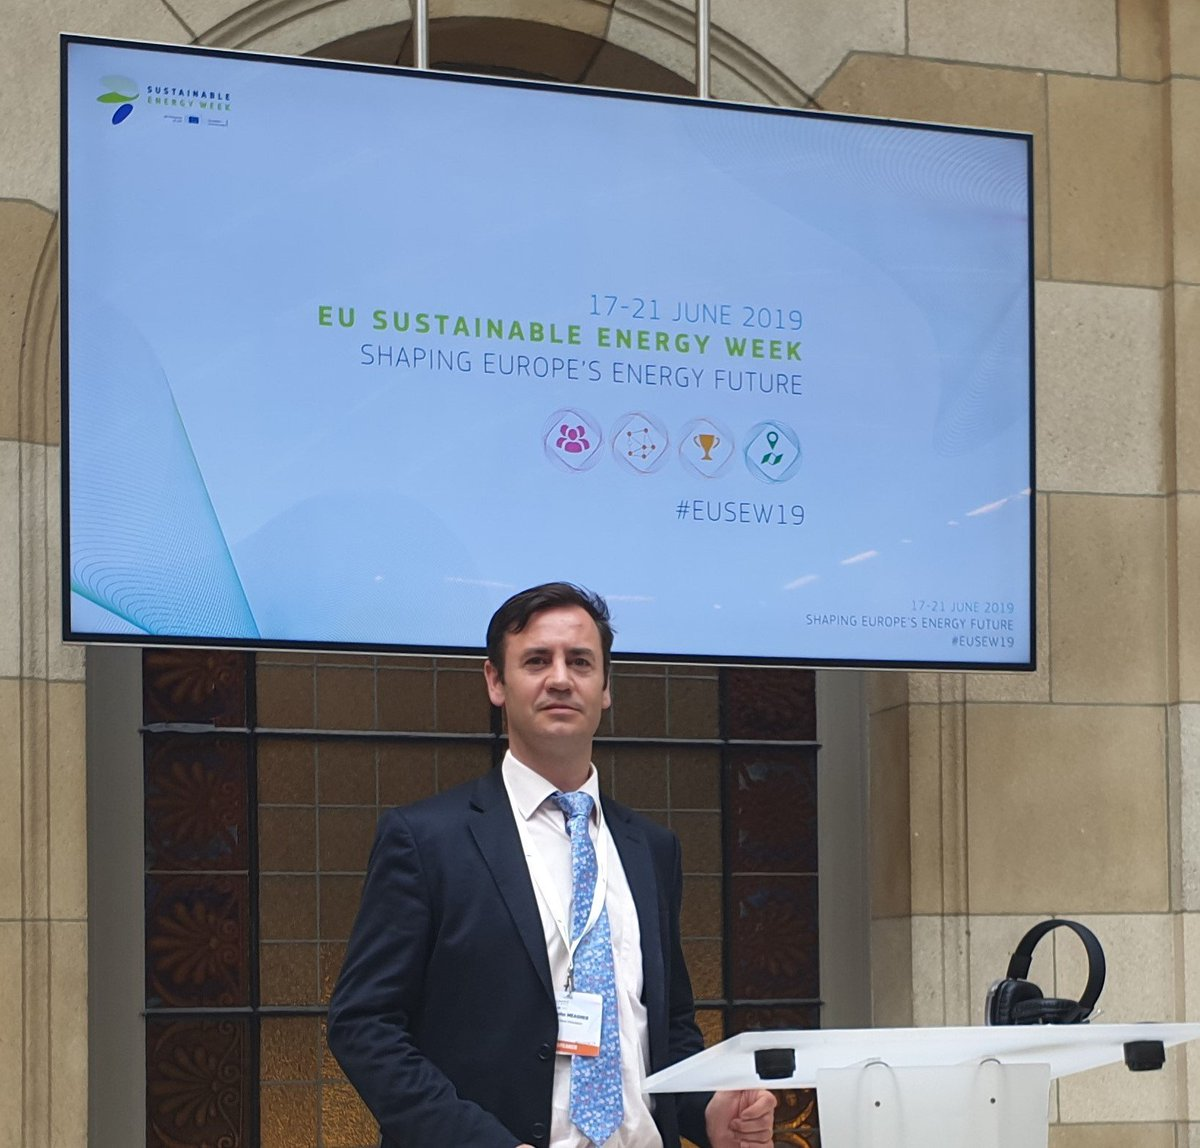 Today we are at @euenergyweek encouraging the use of tidal energy as a sustainable energy source for the future.  John Meagher, our Development Director, is at the event, speaking to experts across the industry #turnthetide #tidalenergy #renewables #EUSEW2019